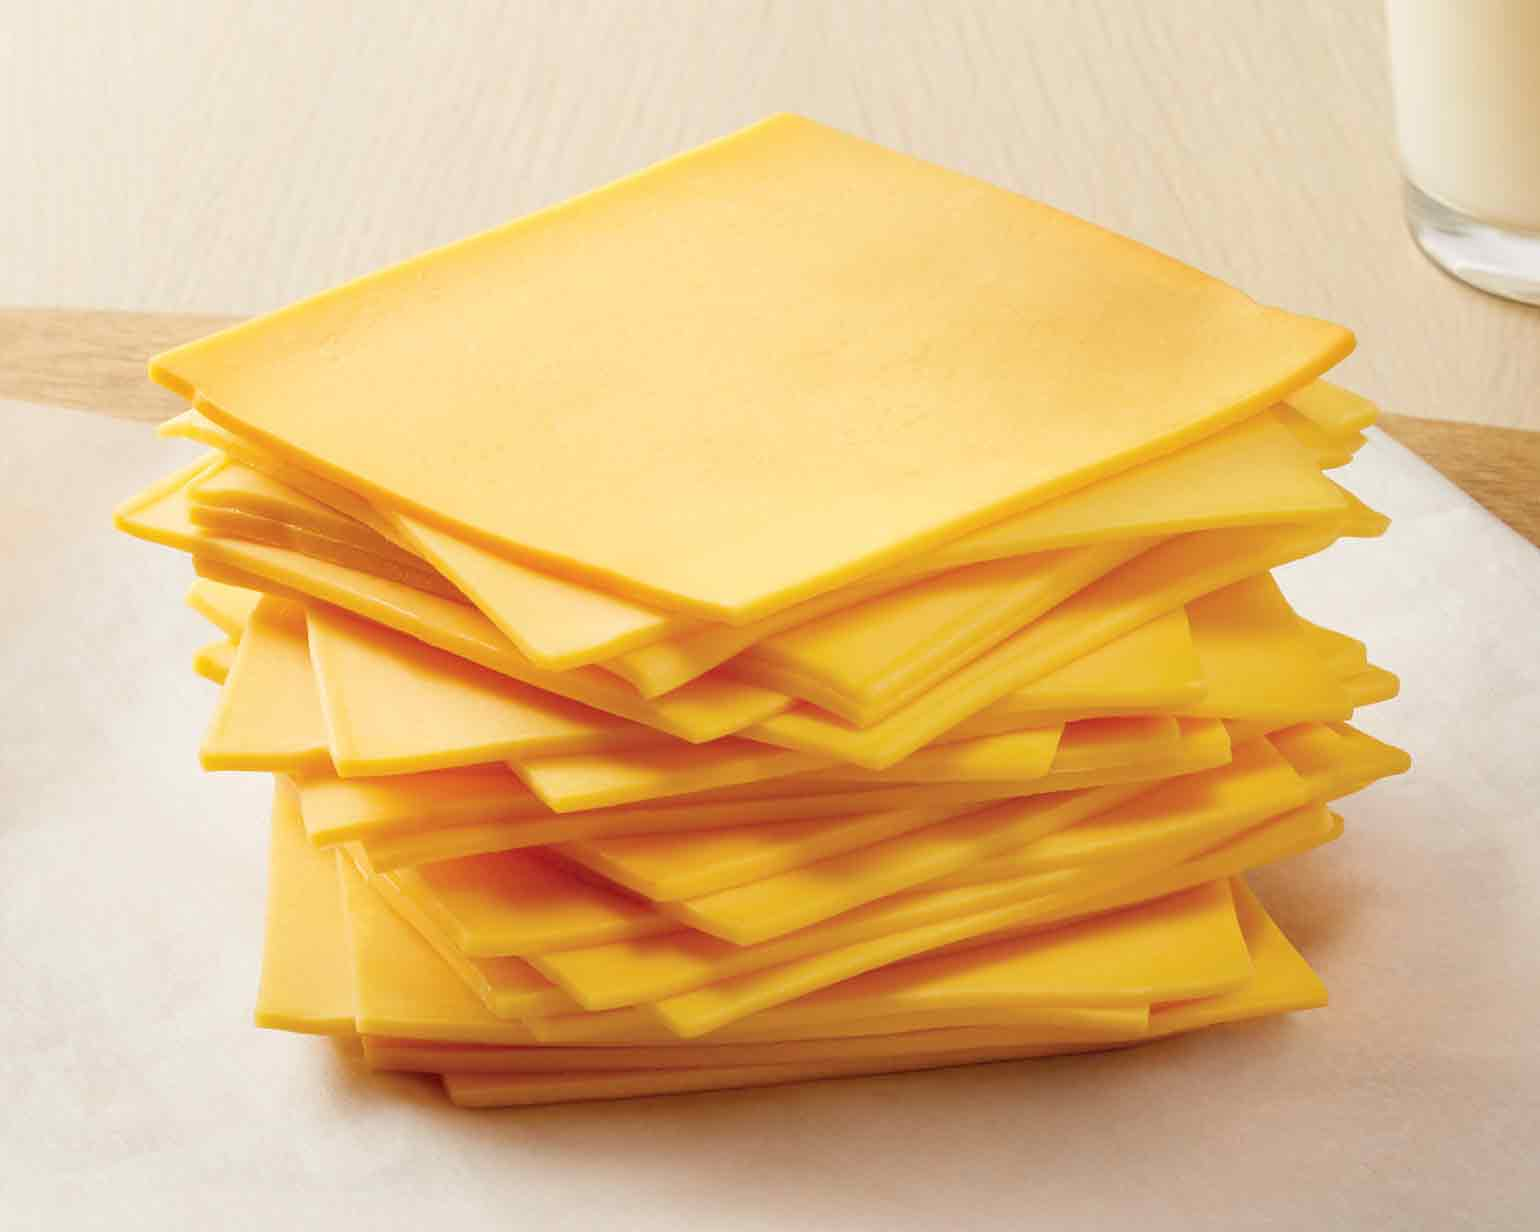 American Cheese american cheese, processed cheese, amish cheese blend, cheese blend, blended cheese, amish american cheese, organic cheese, organic amish cheese, cheese, amish, amish farm, amish organic cheese, simply cheese, local amish cheese, amish cheese near me